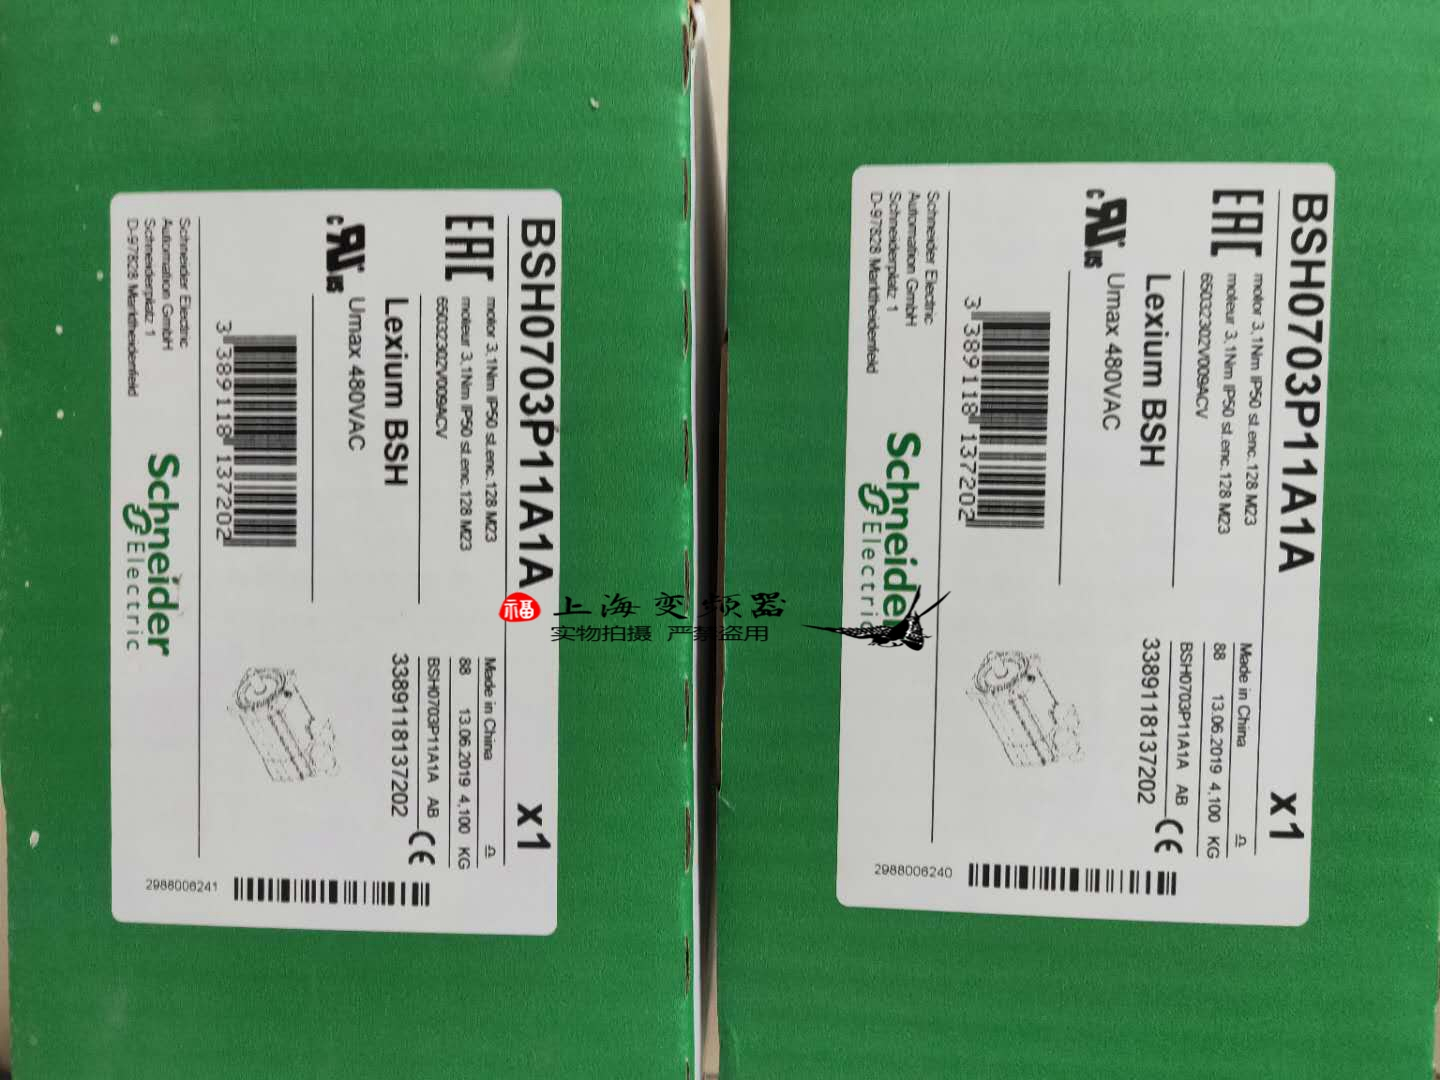 Schneider lxm32 servo motor bmh0701p011a2a brand new genuine quality guarantee one year special price channel